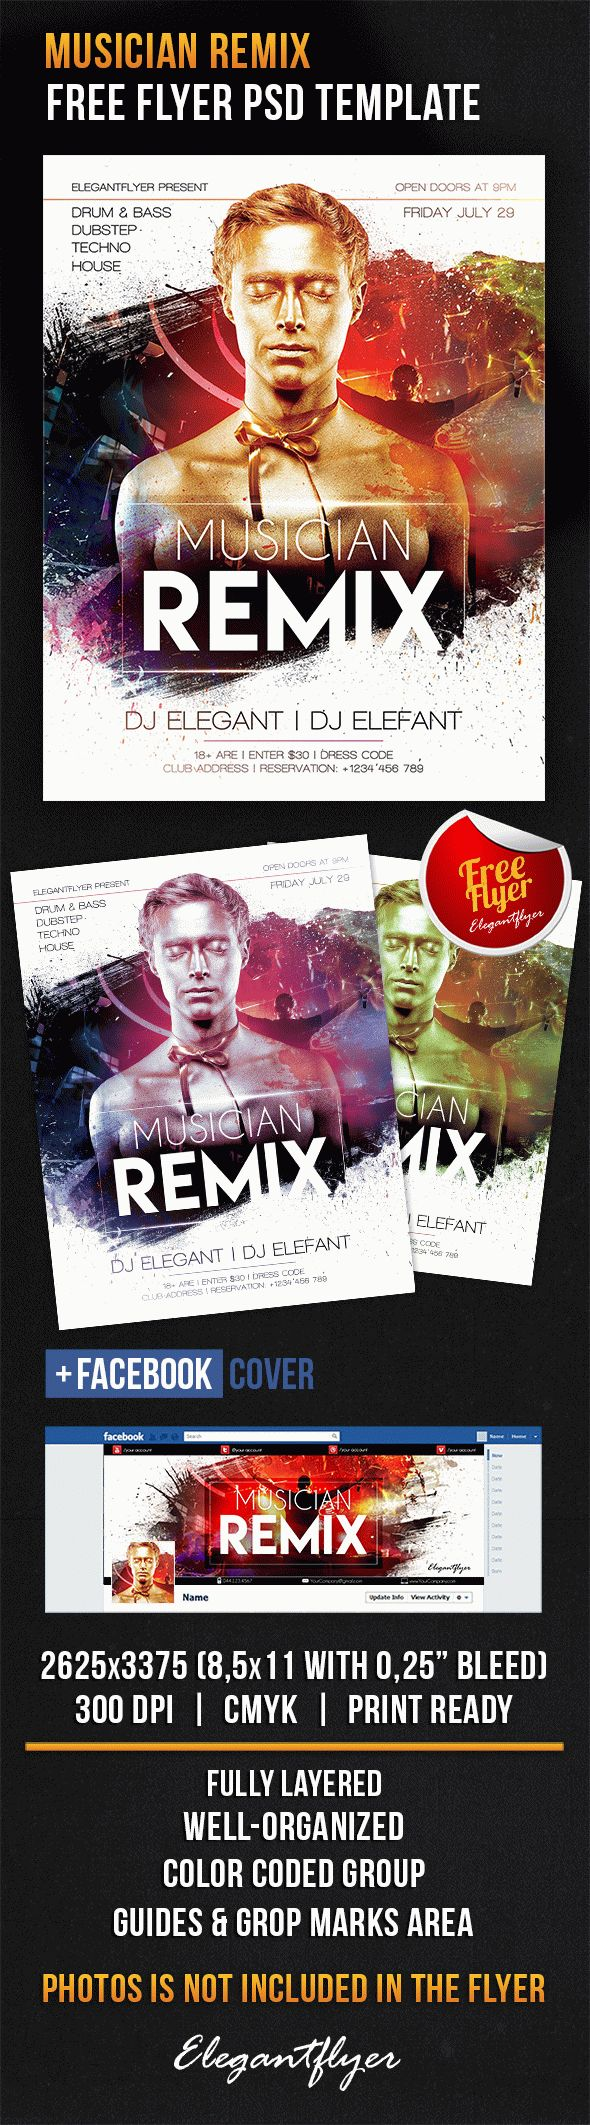 Musician Remix – Free Flyer PSD Template